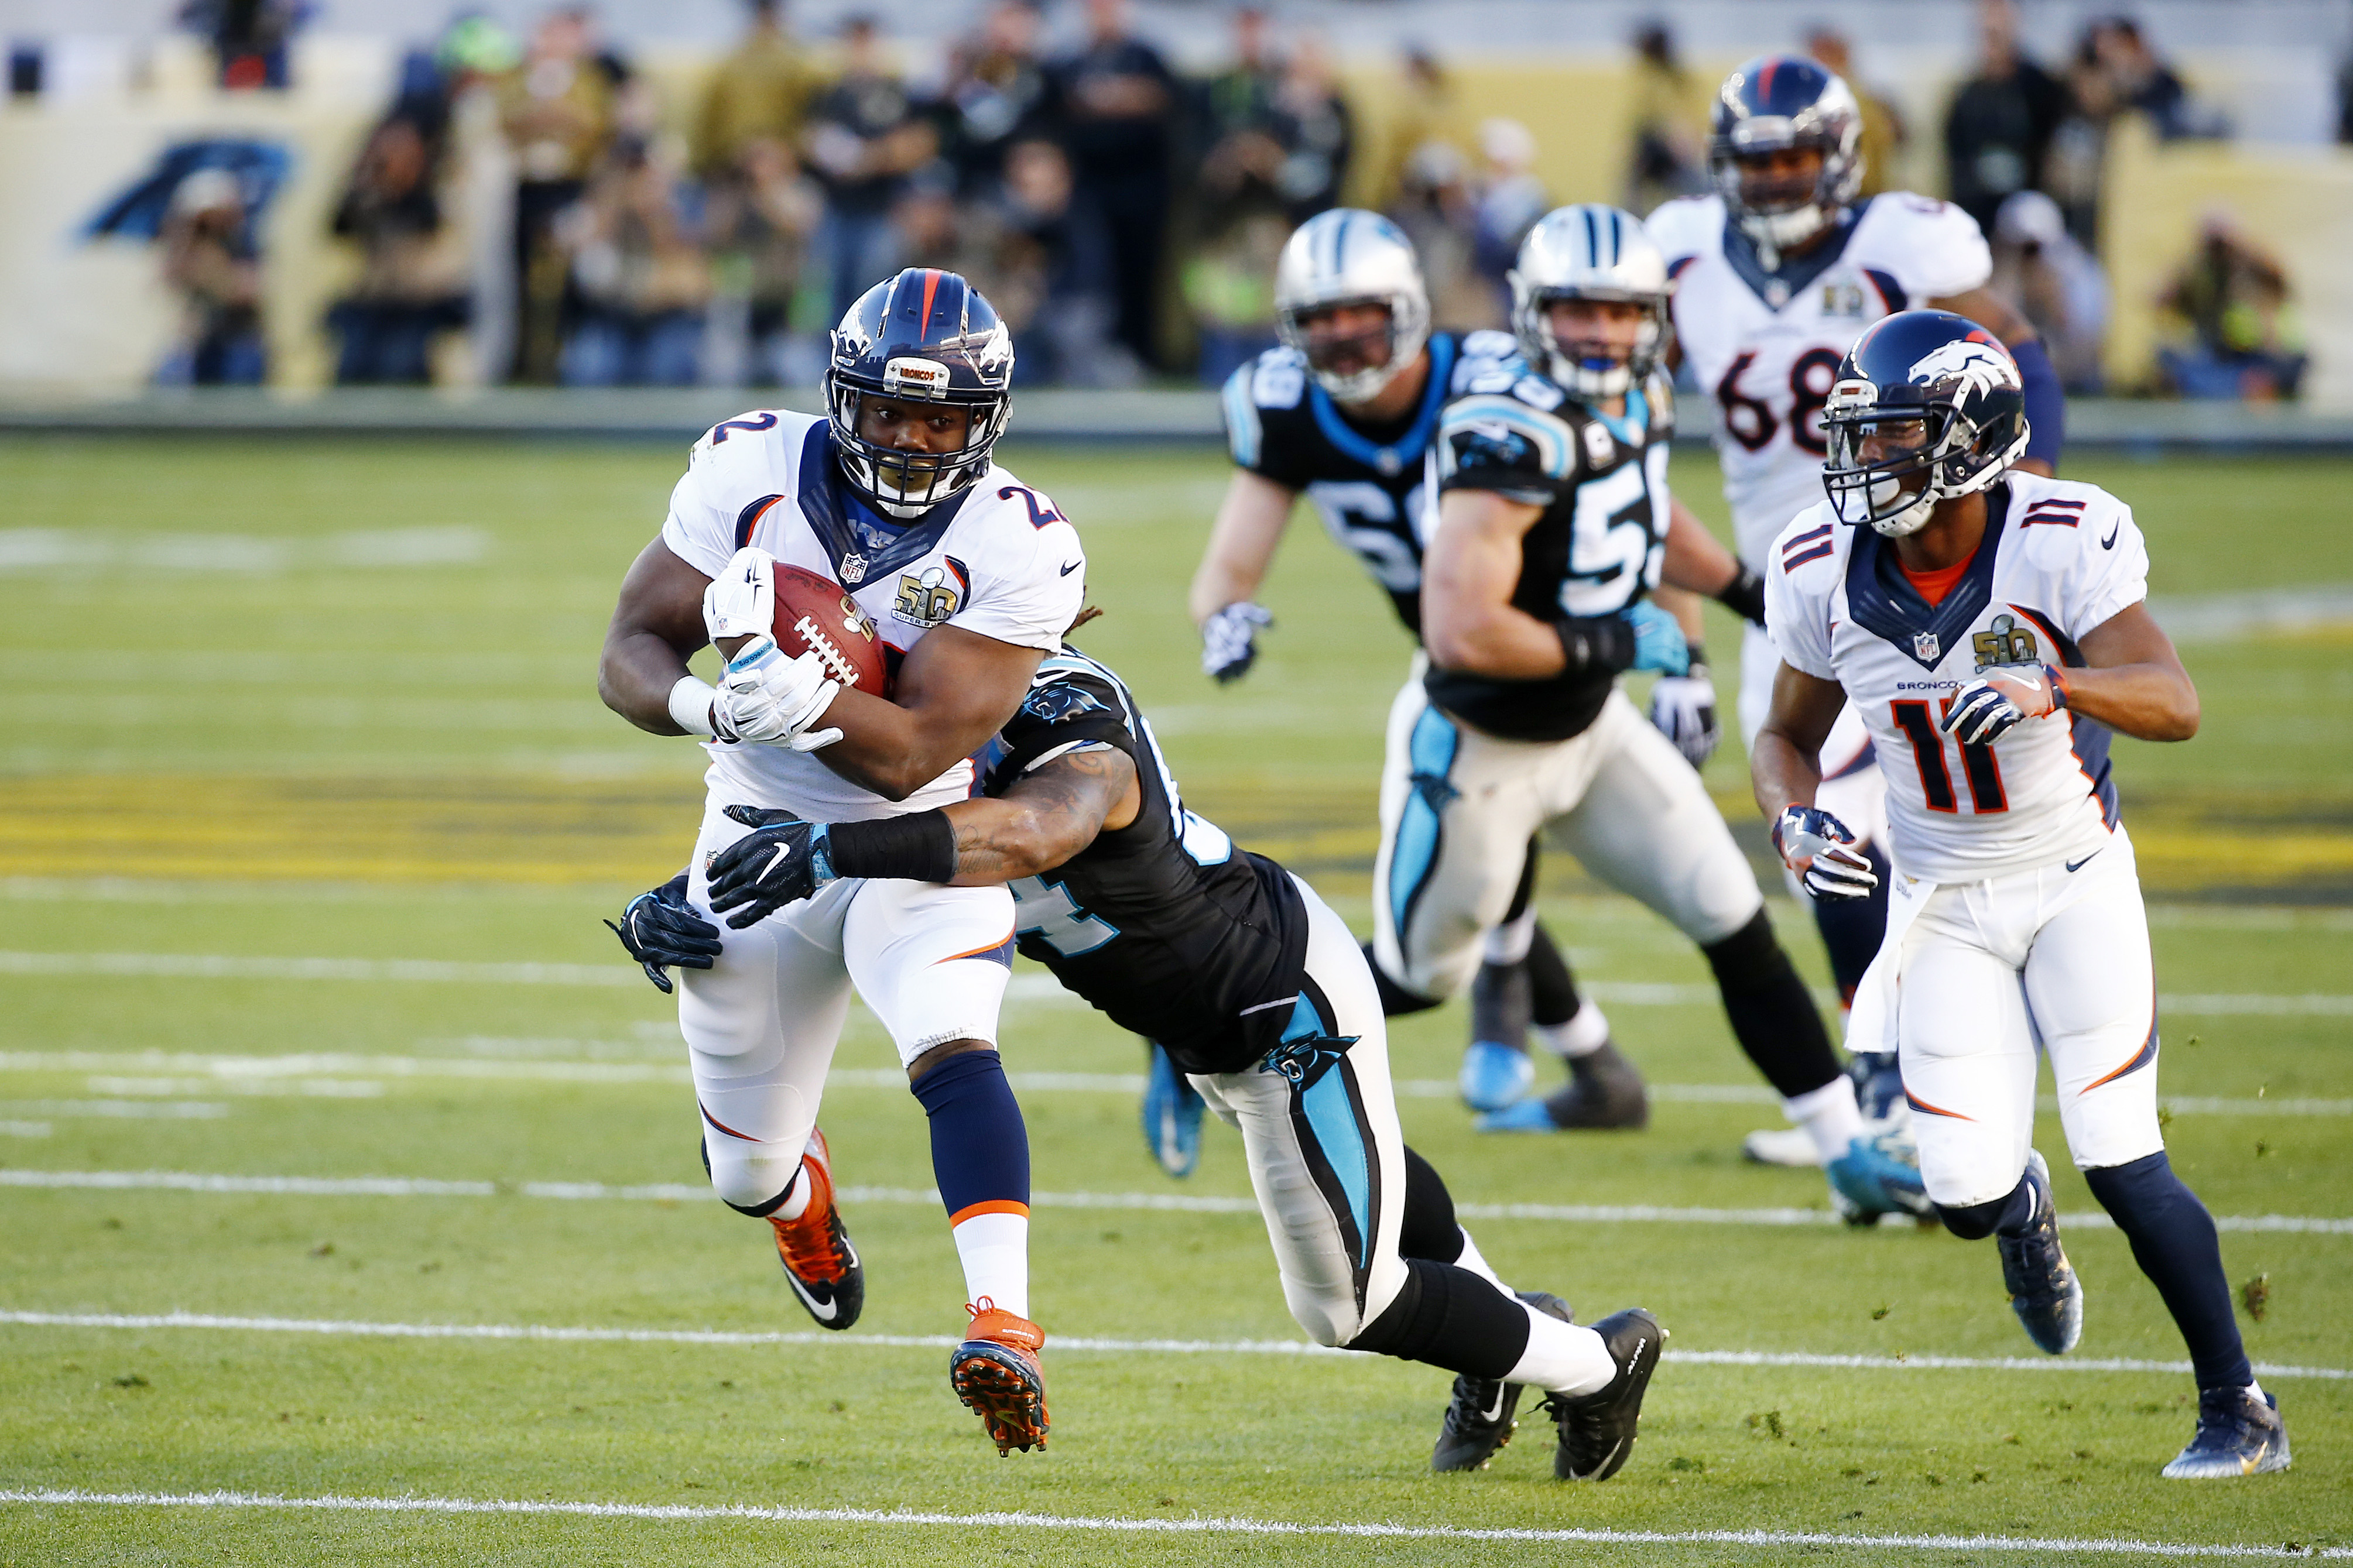 C.J. Anderson #22 of the Denver Broncos runs with the ball in the first quarter against the Carolina Panthers during Super Bowl 50 at Levi's Stadium on February 7, 2016 in Santa Clara, California. (Photo by Al Bello/Getty Images)